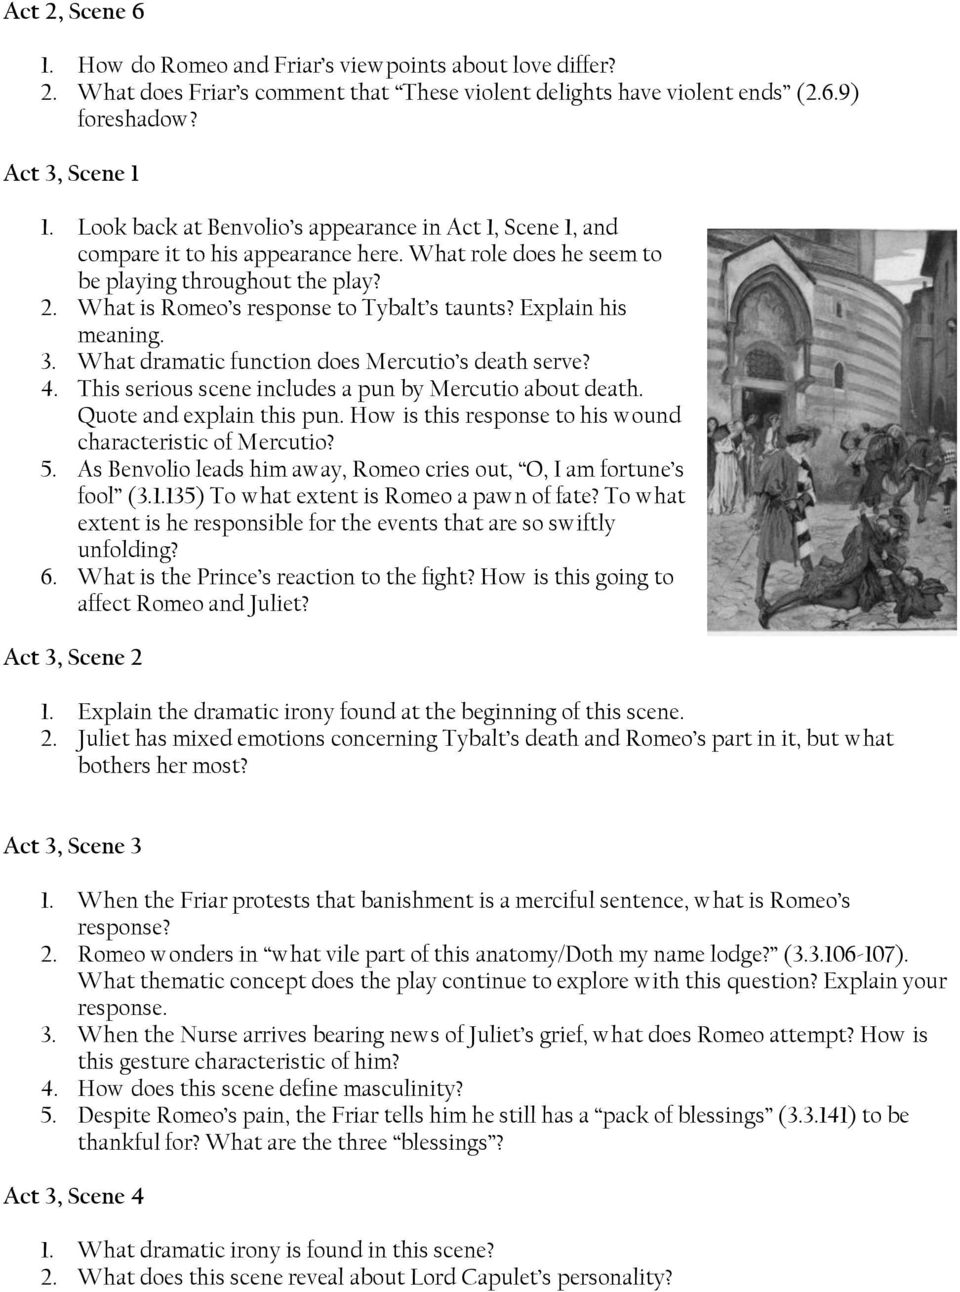 mercutio essays These are 3 table style plans for essays based on mercutio, tybalt and benvolio they includes the key point for each paragraph along with quotes and explanations.